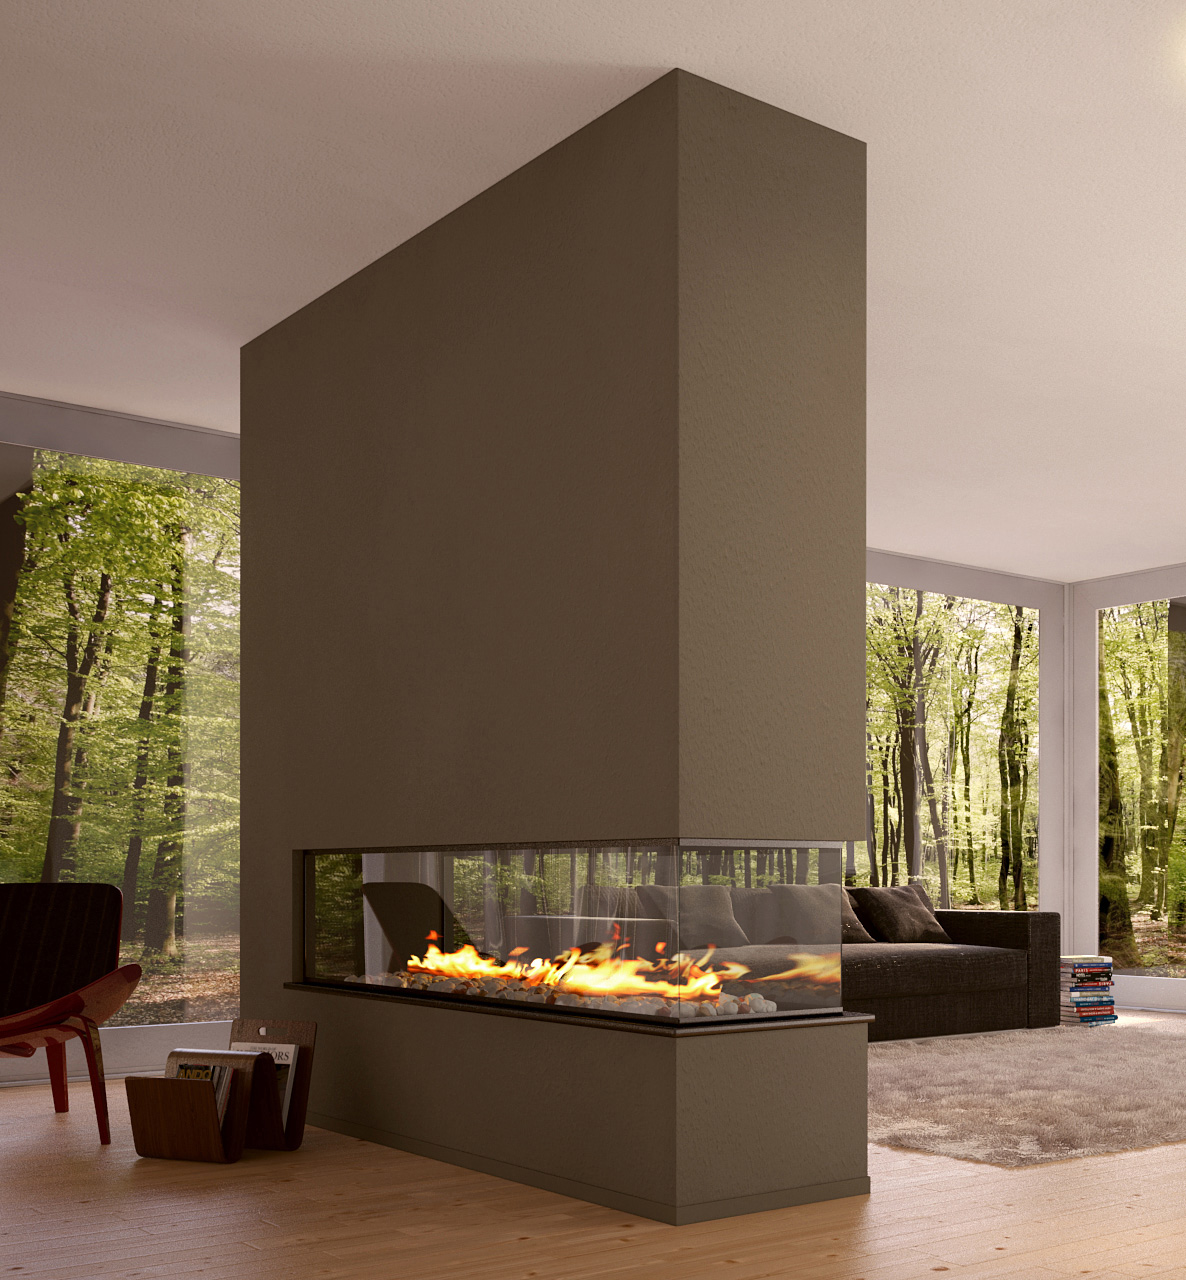 Two sided fireplace warms spacious interior effortless with eclectic plan homesfeed for Interior design fireplace living room